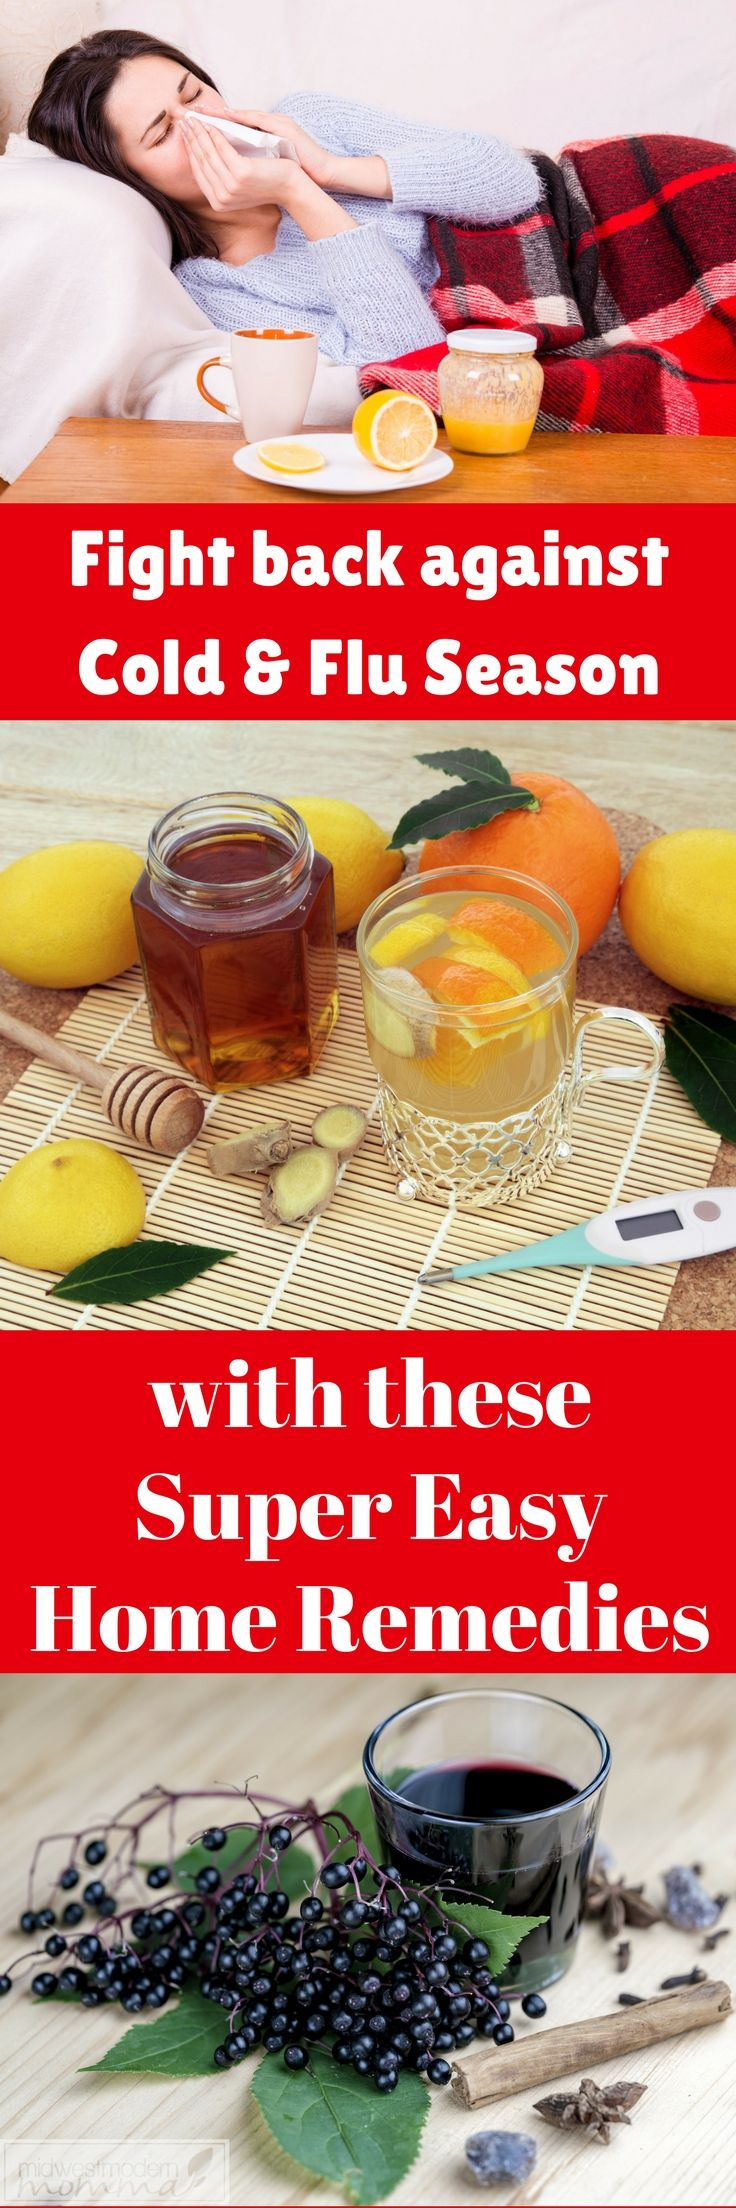 Here is a collection of 30 homemade cold & flu remedies to help boost your immune system, deal with a sore throat, and even the dreaded earache! Natural Remedies   Cold Remedies   Flu Remedies   Ear Infection #remedies #homeremedies #naturalremedies #holistic